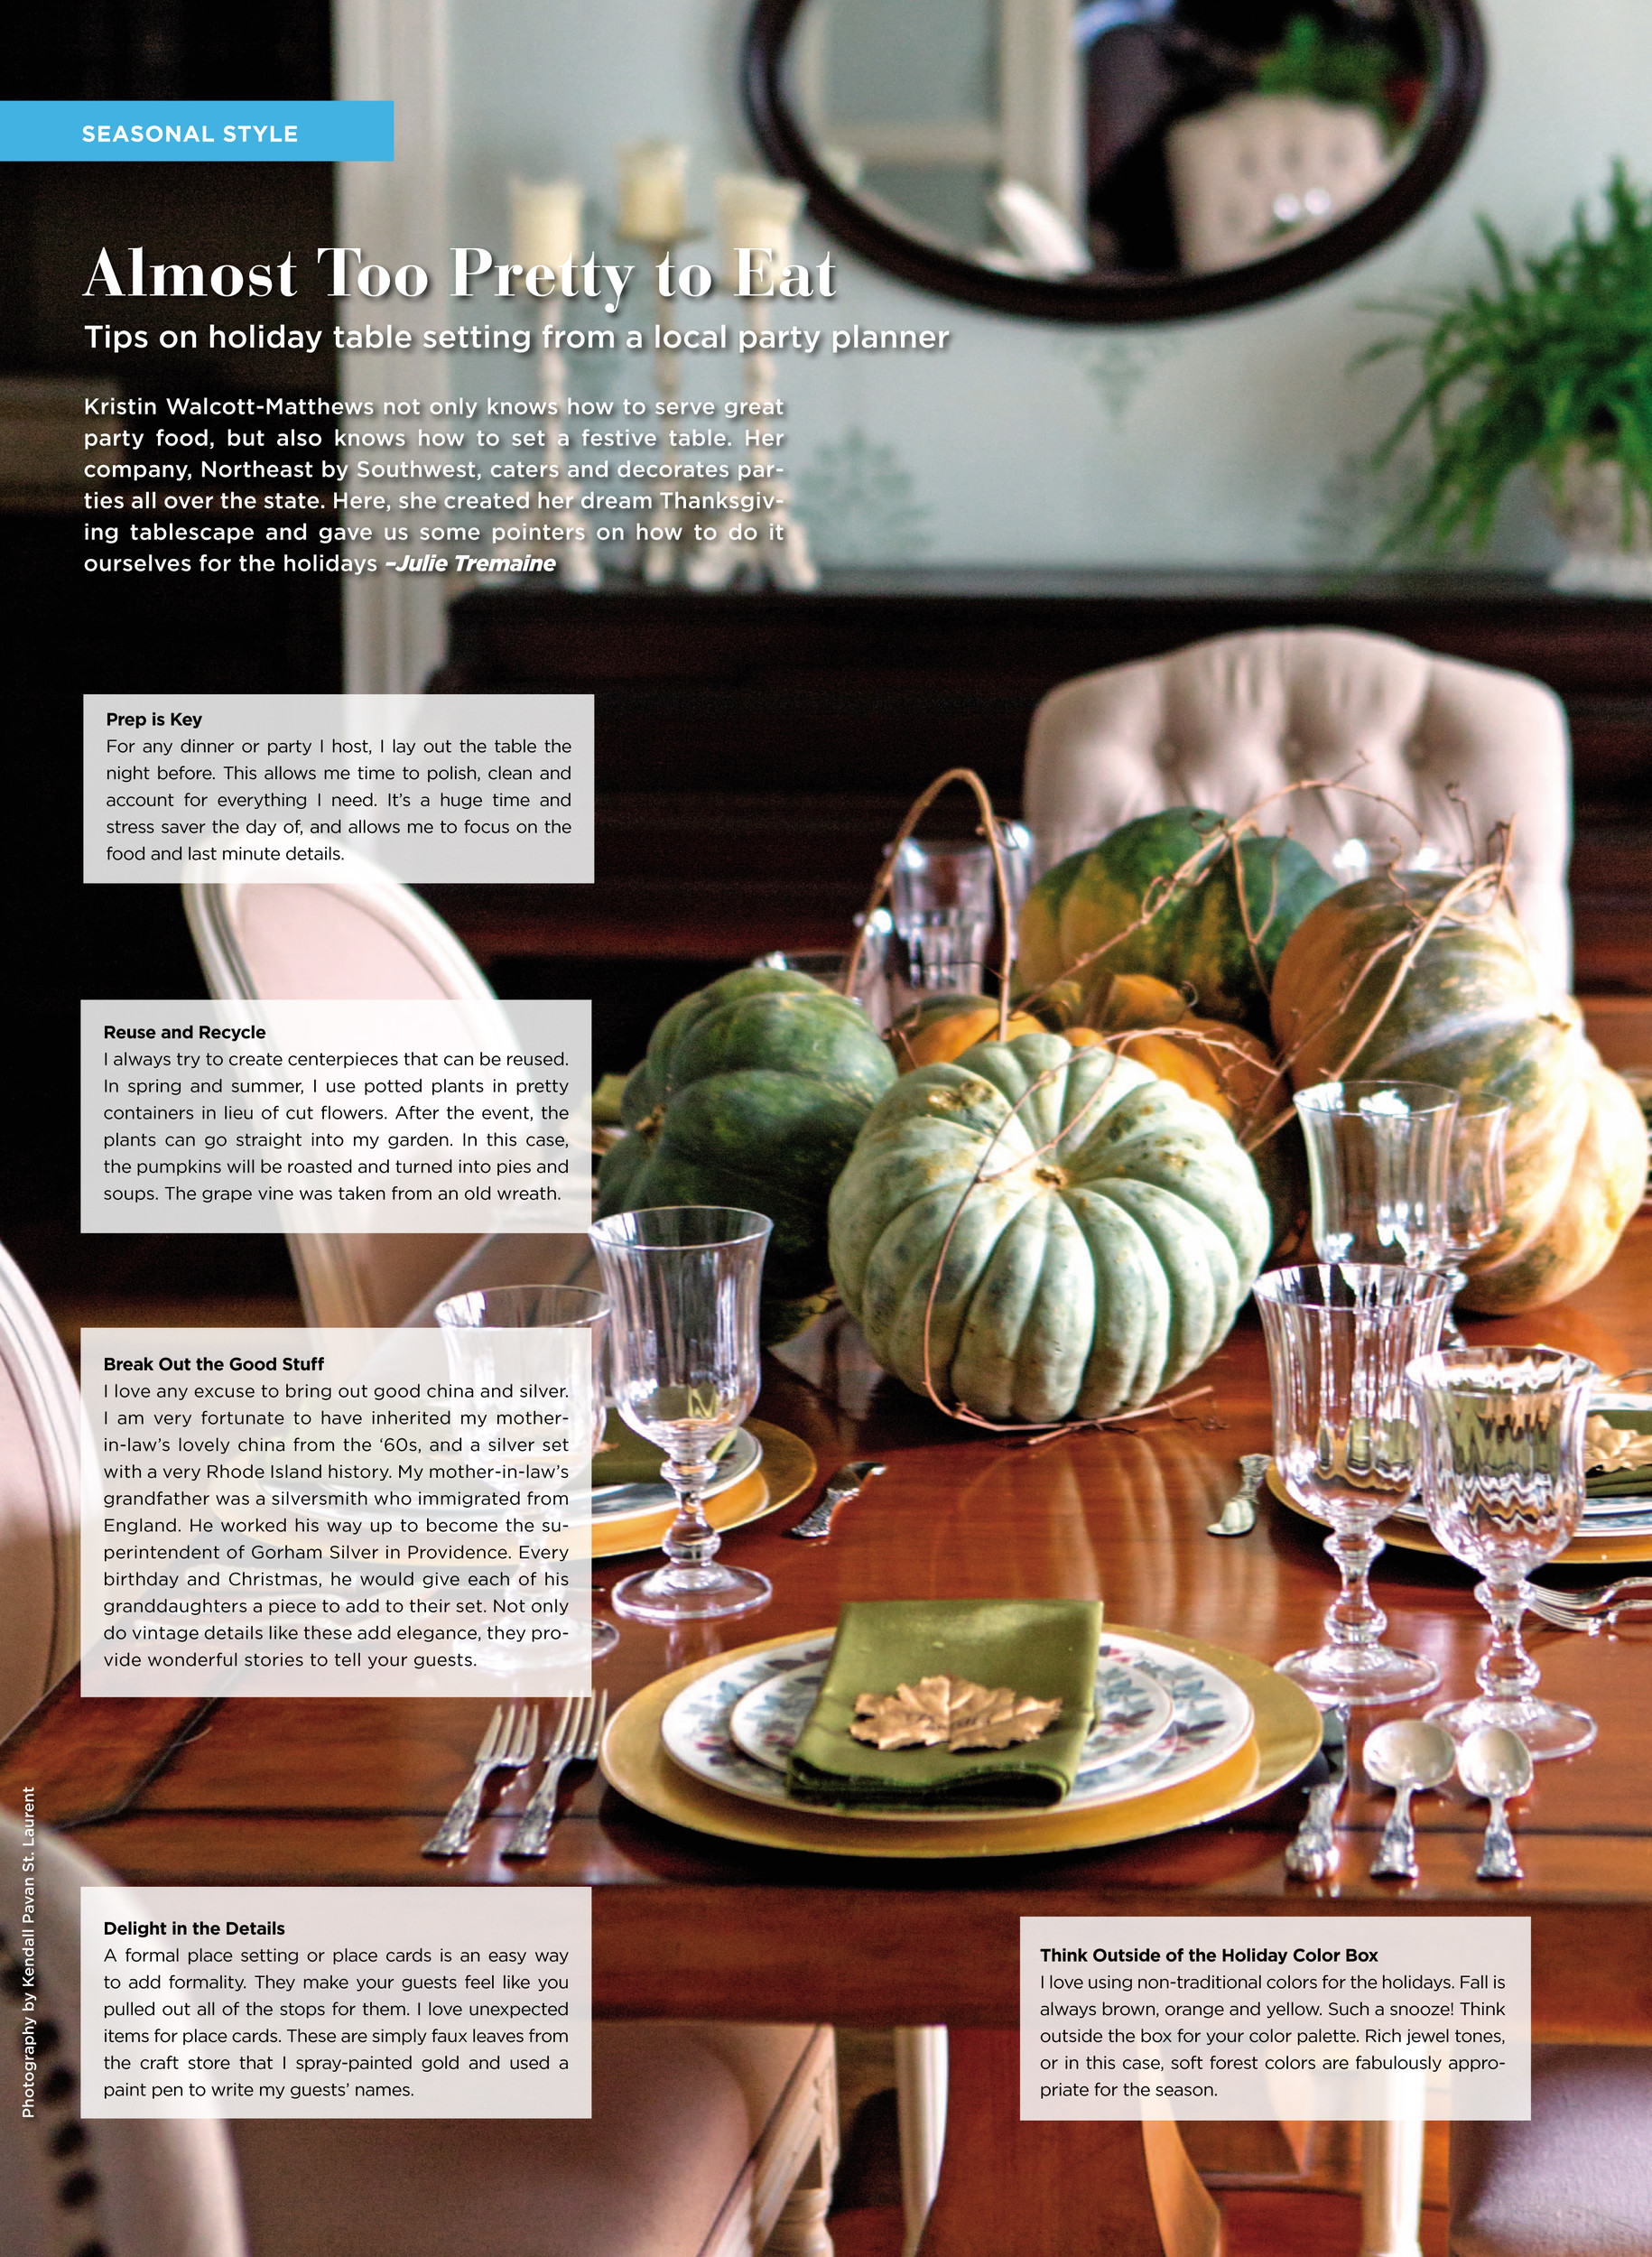 Tips on Holiday Table Setting from a Local Party Planner ...